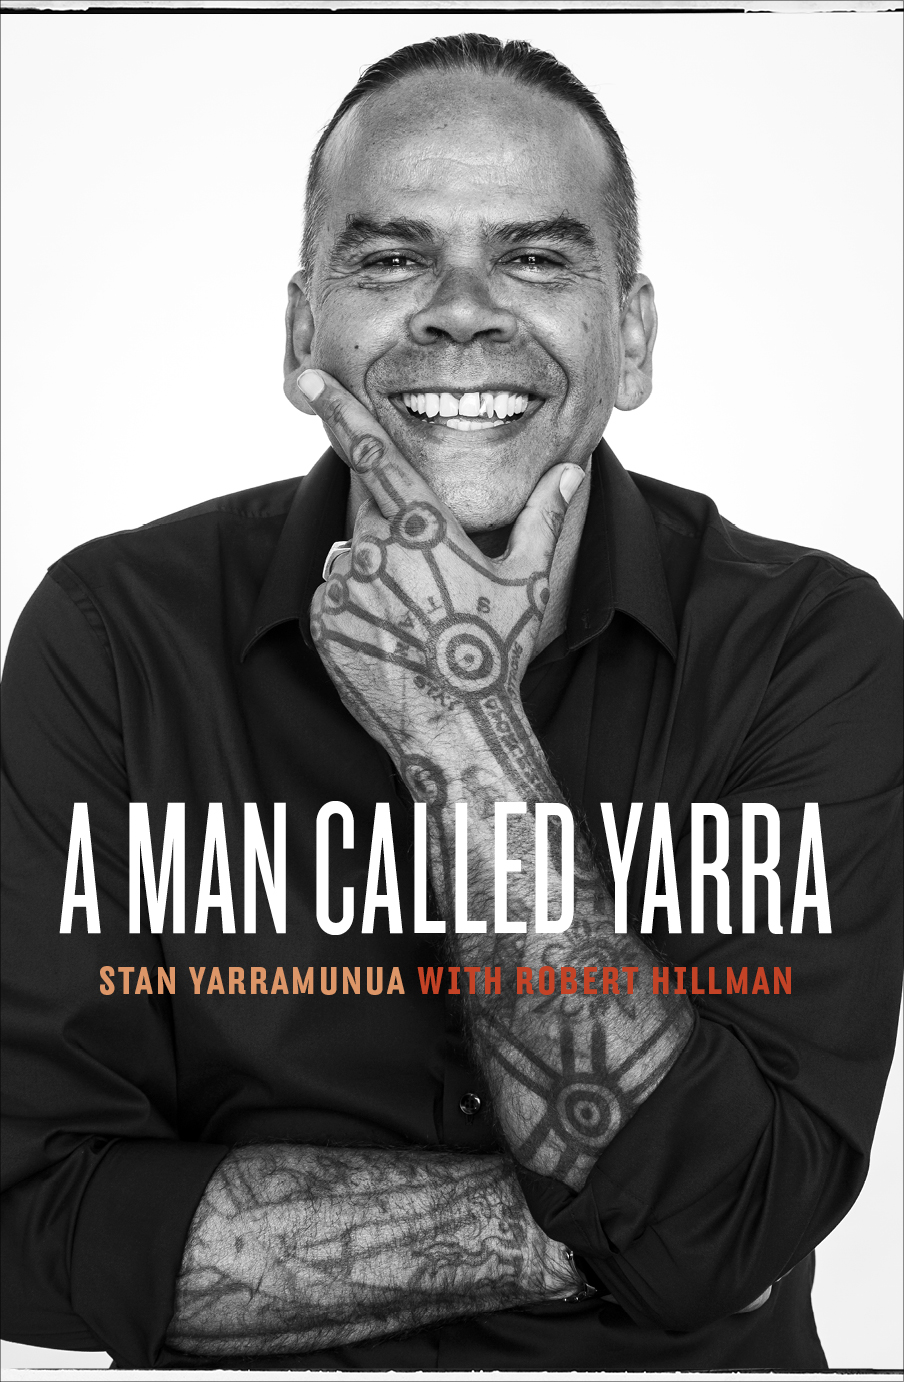 Cover of 'A Man Called Yarra' by Stan Yarramunua with Robert Hillman